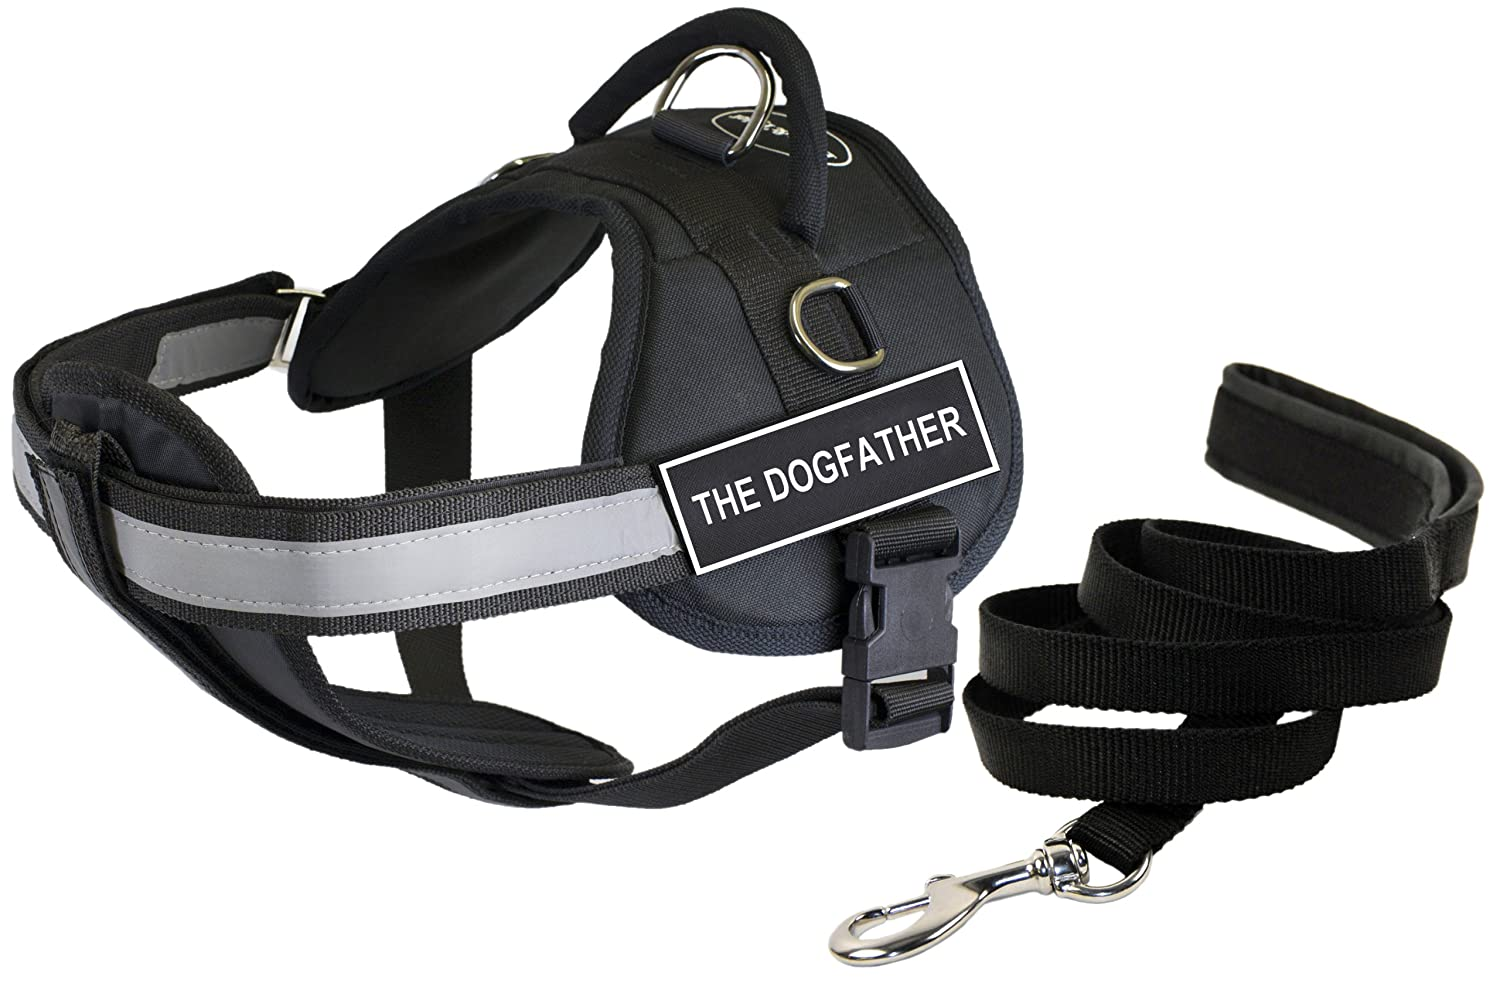 Dean & Tyler's DT Works The Dogfather  Harness with Chest Padding, X-Small, and 6 ft Padded Puppy Leash.